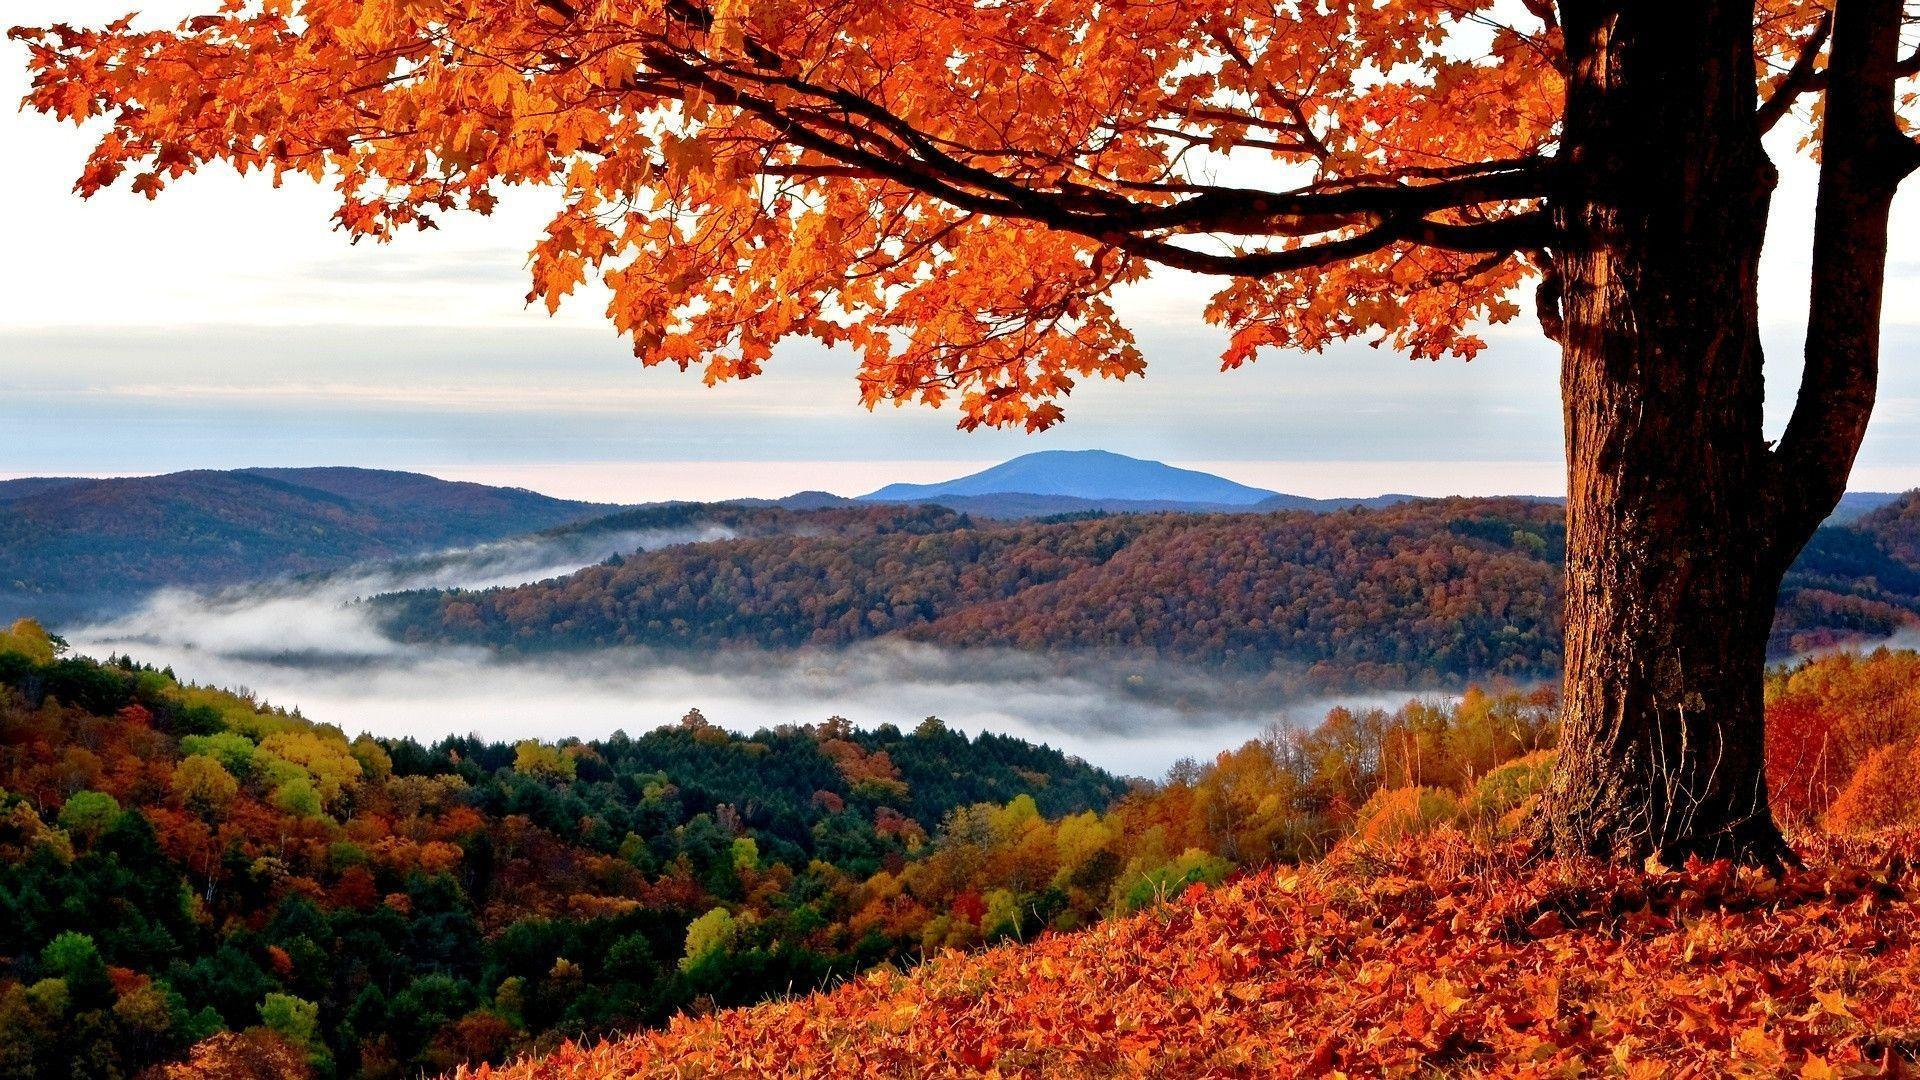 Fall Wallpaper For Desktop   High Resolution Fall Background 1920x1080